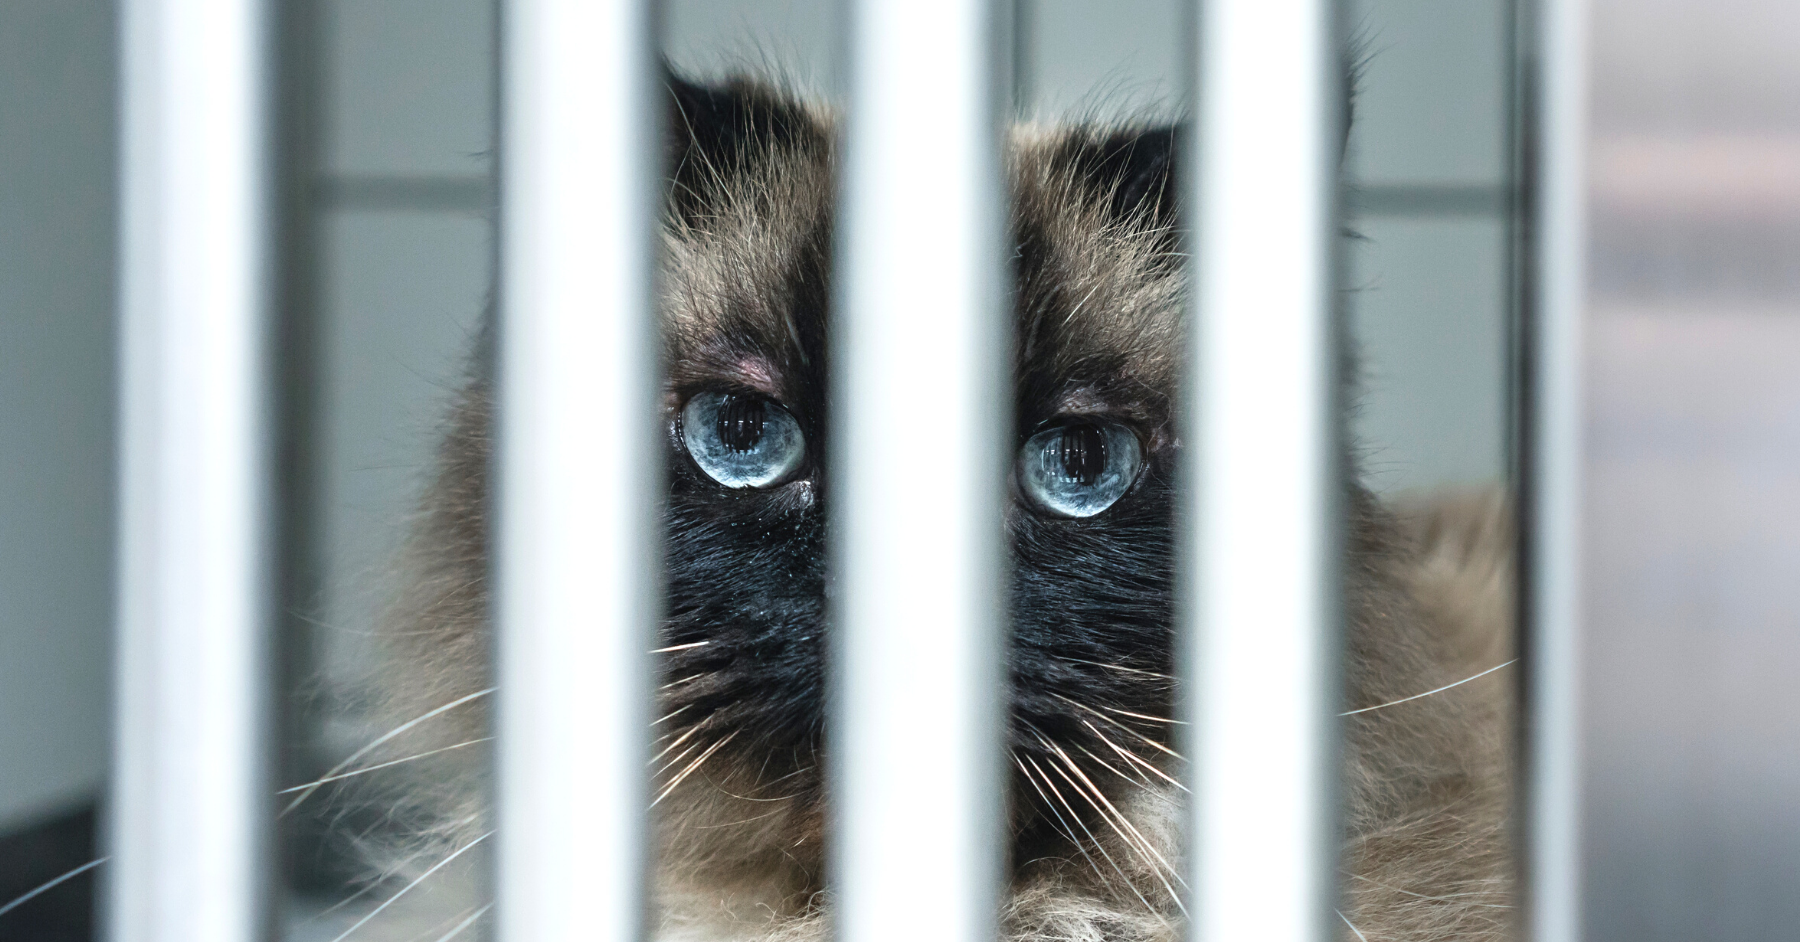 A photo of a blue-eyes cat peering through steel cage bars